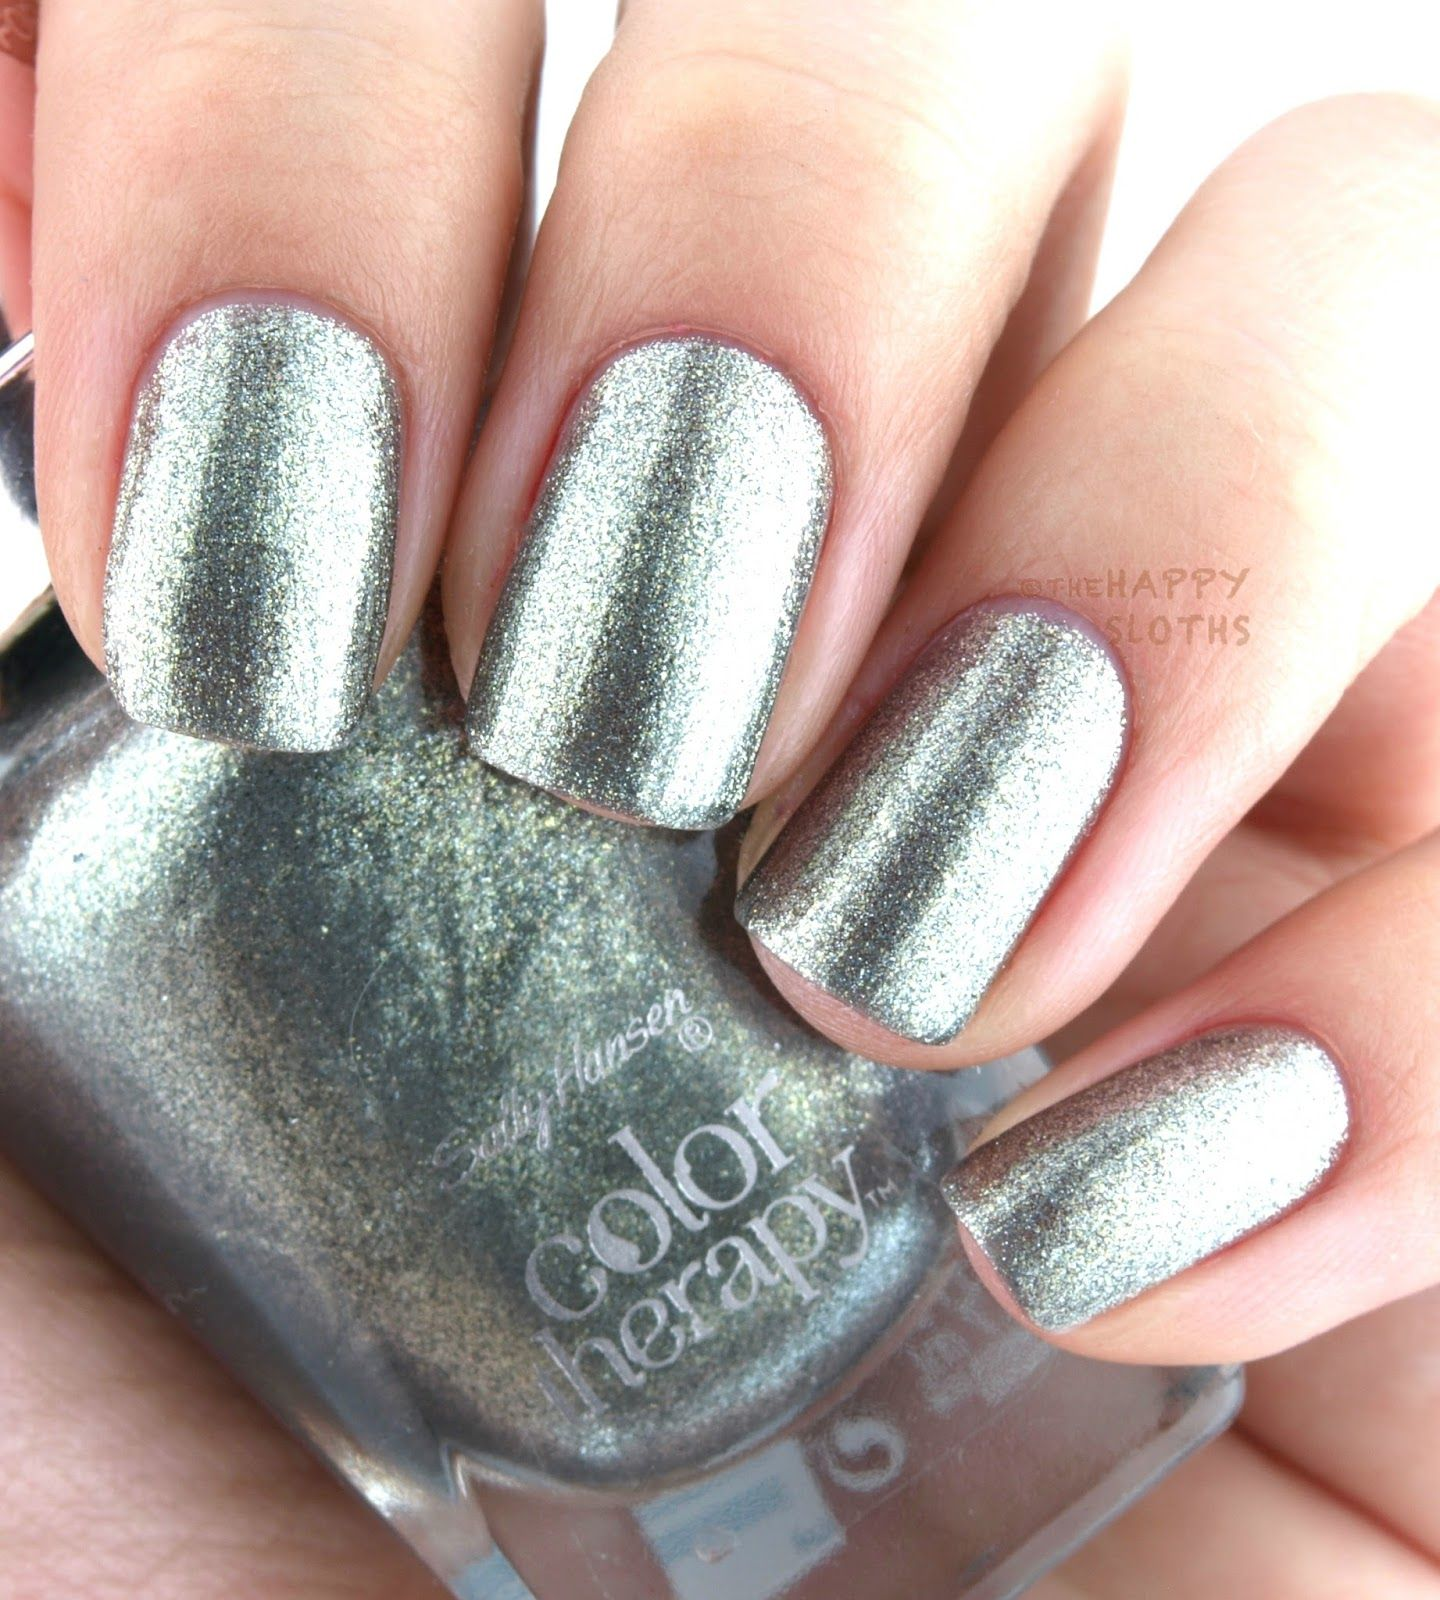 the happy sloths: sally hansen color therapy nail polish: review